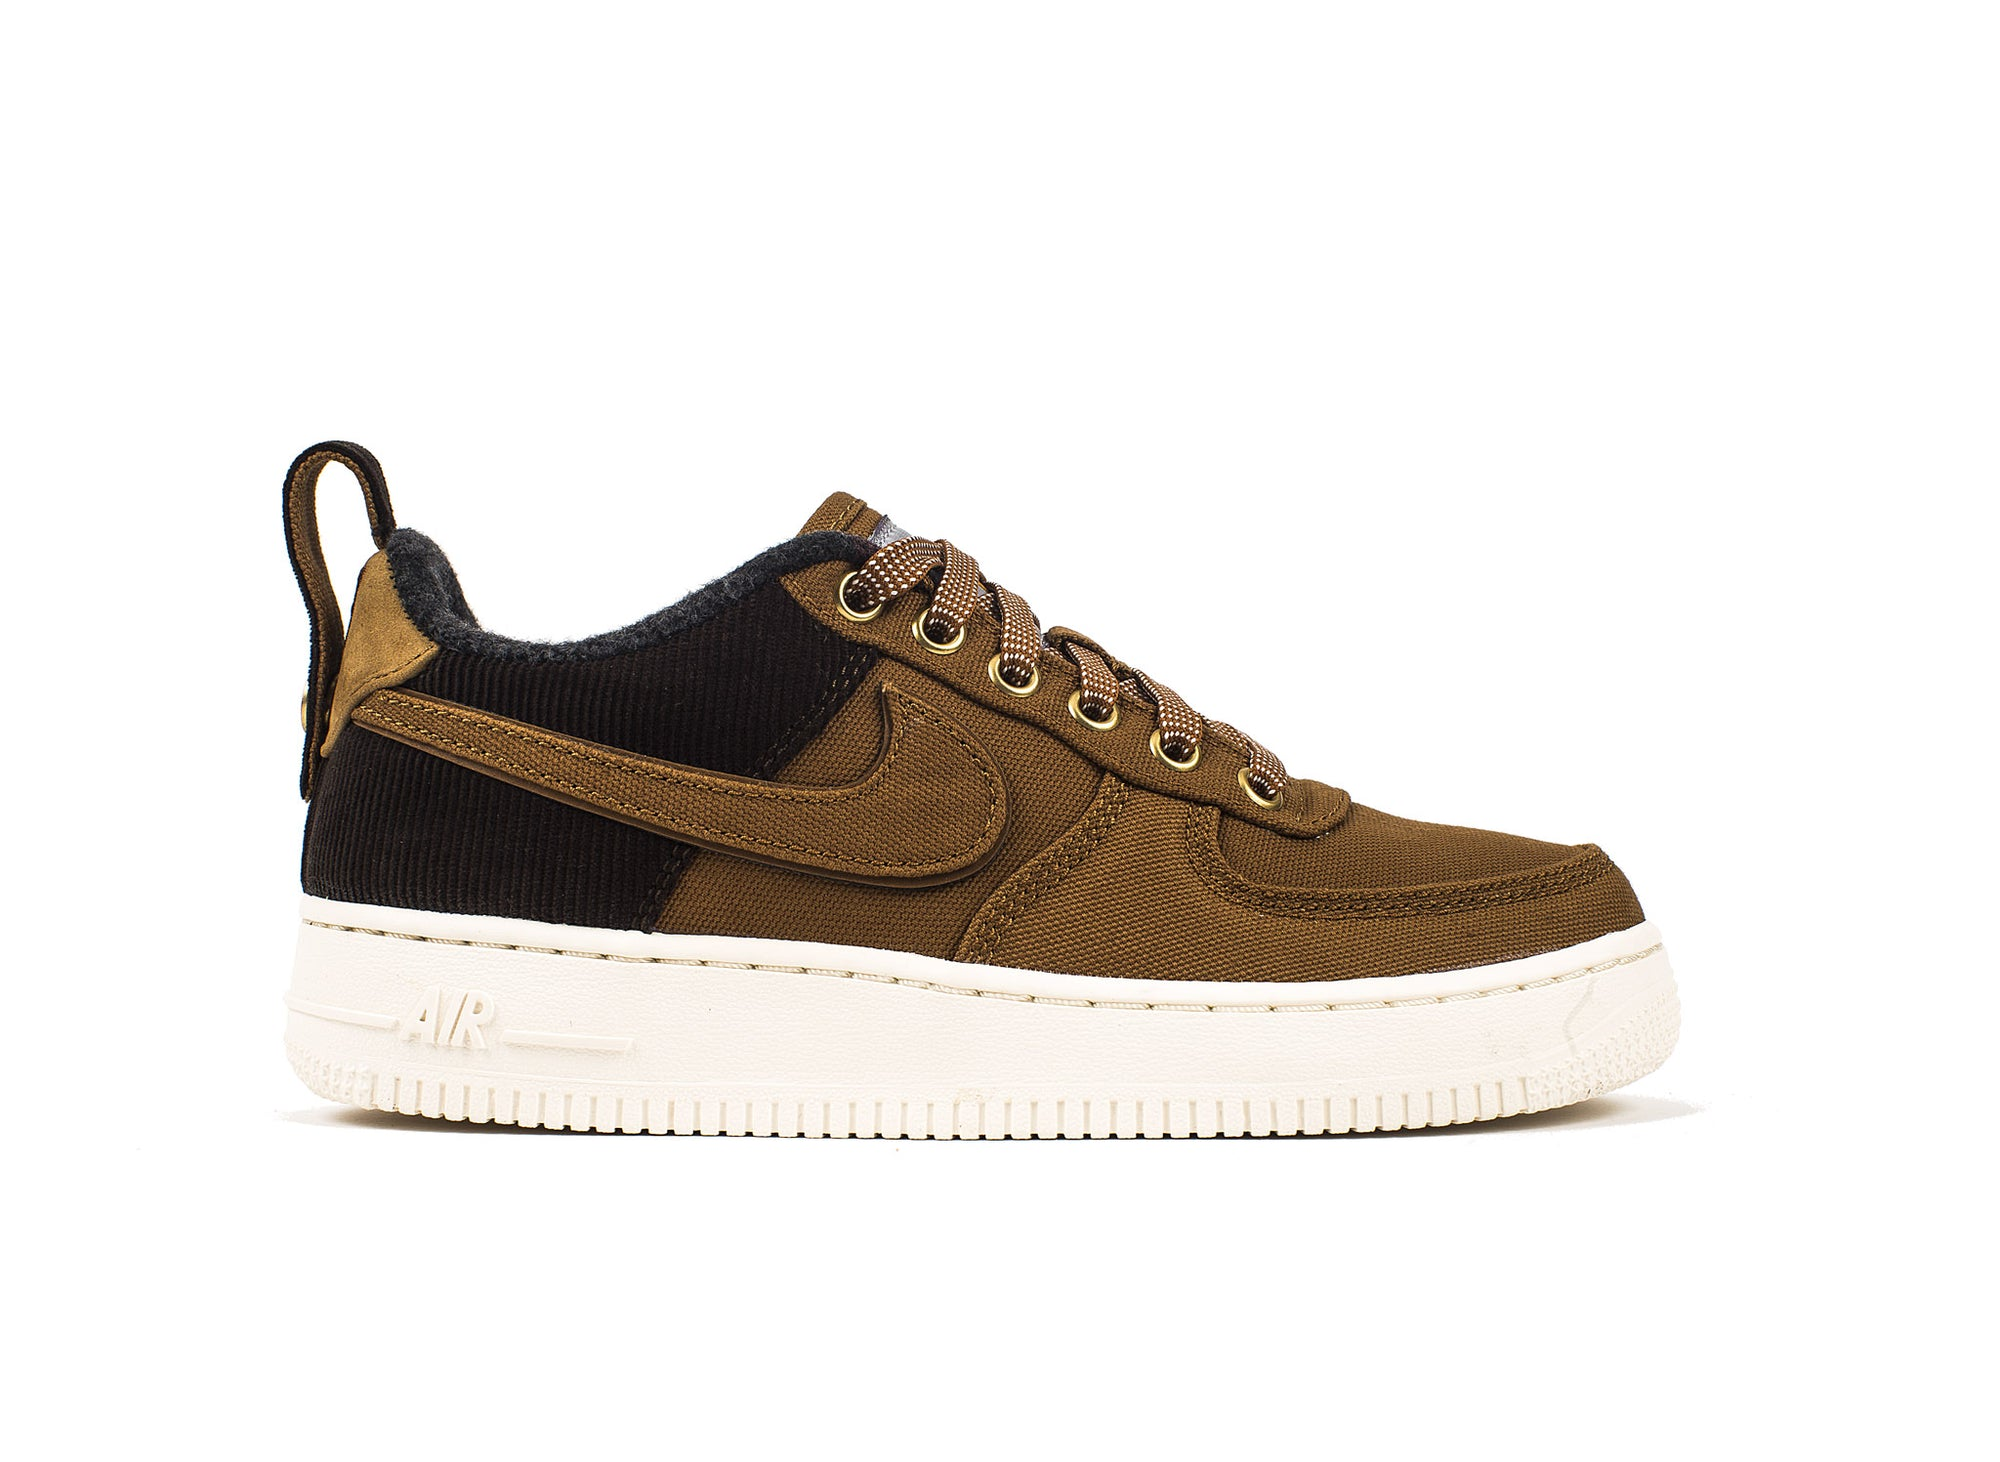 NIKE X CARHARTT WIP AIR FORCE 1 PRM (Grade School)